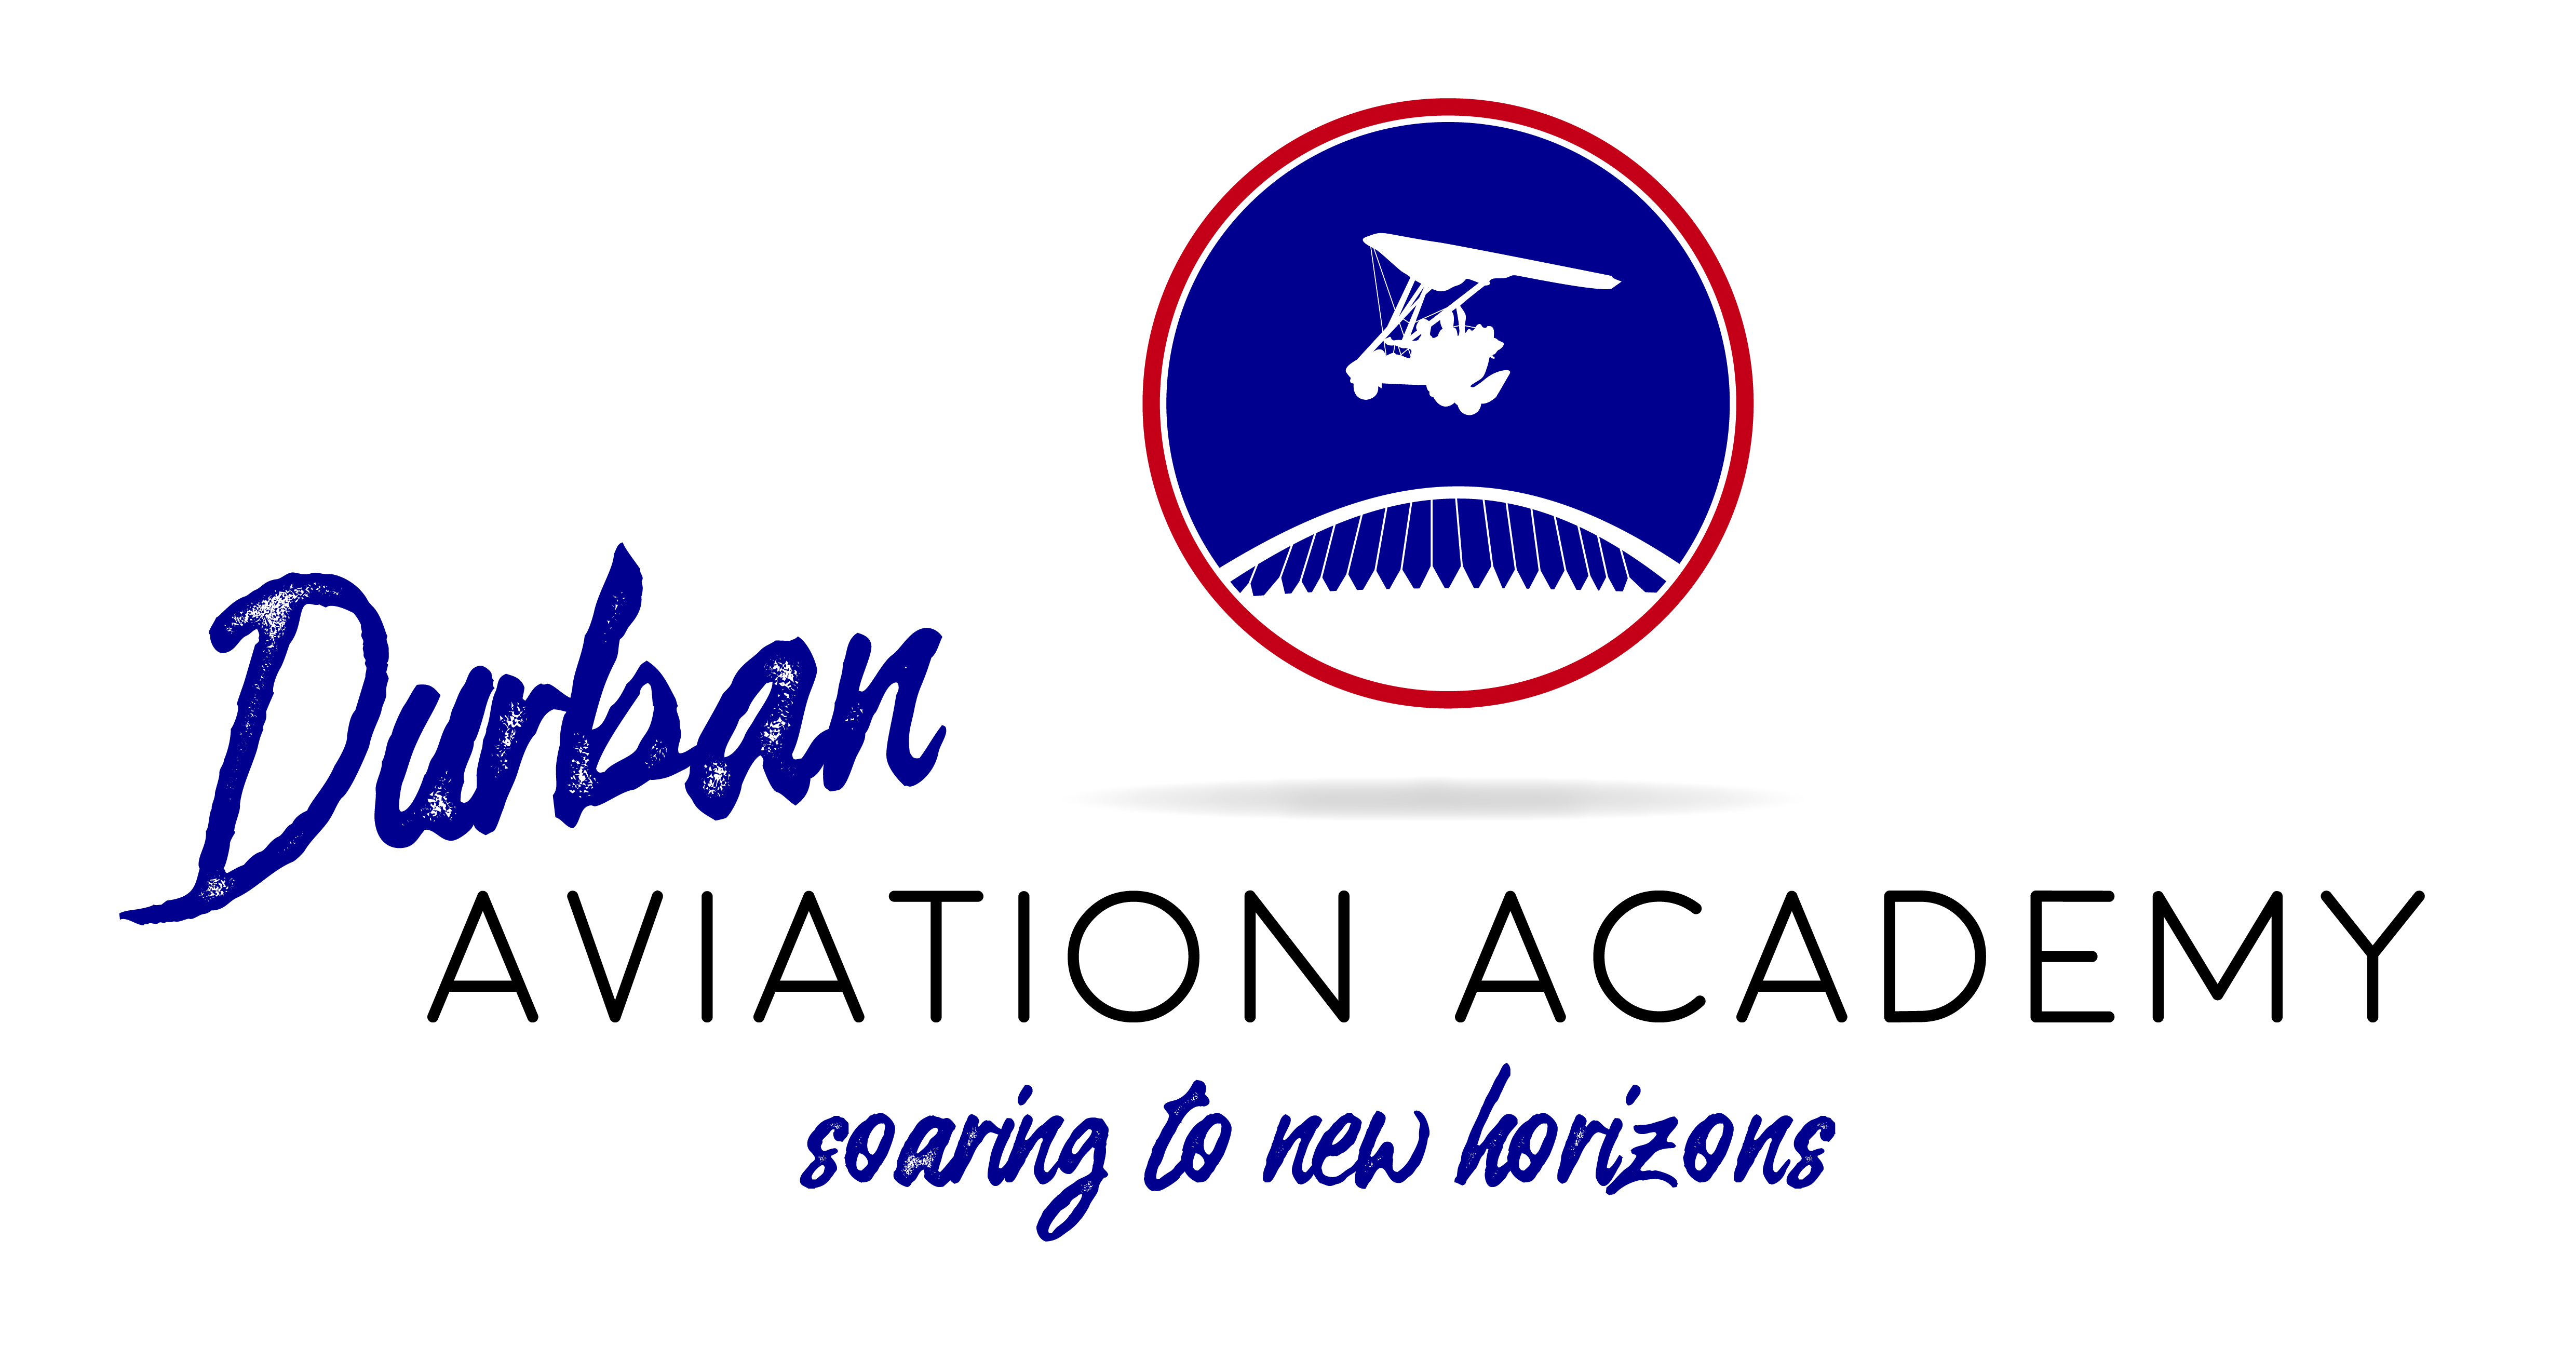 Durban Aviation Academy